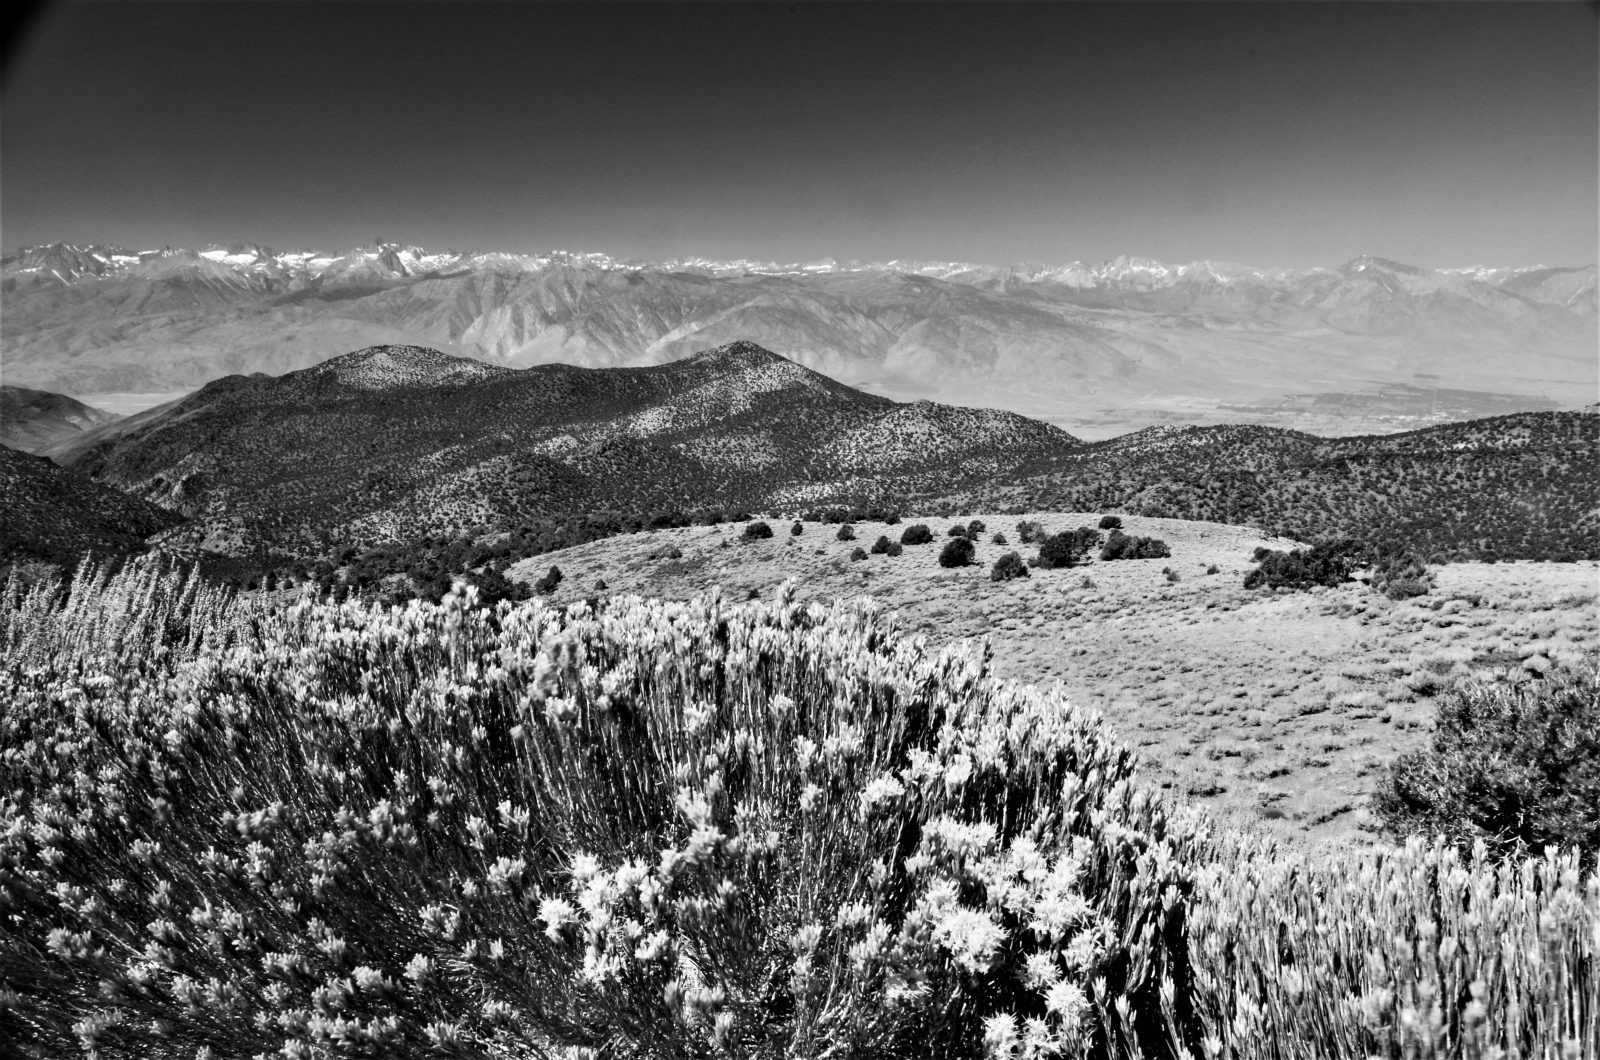 Above Owens Valley